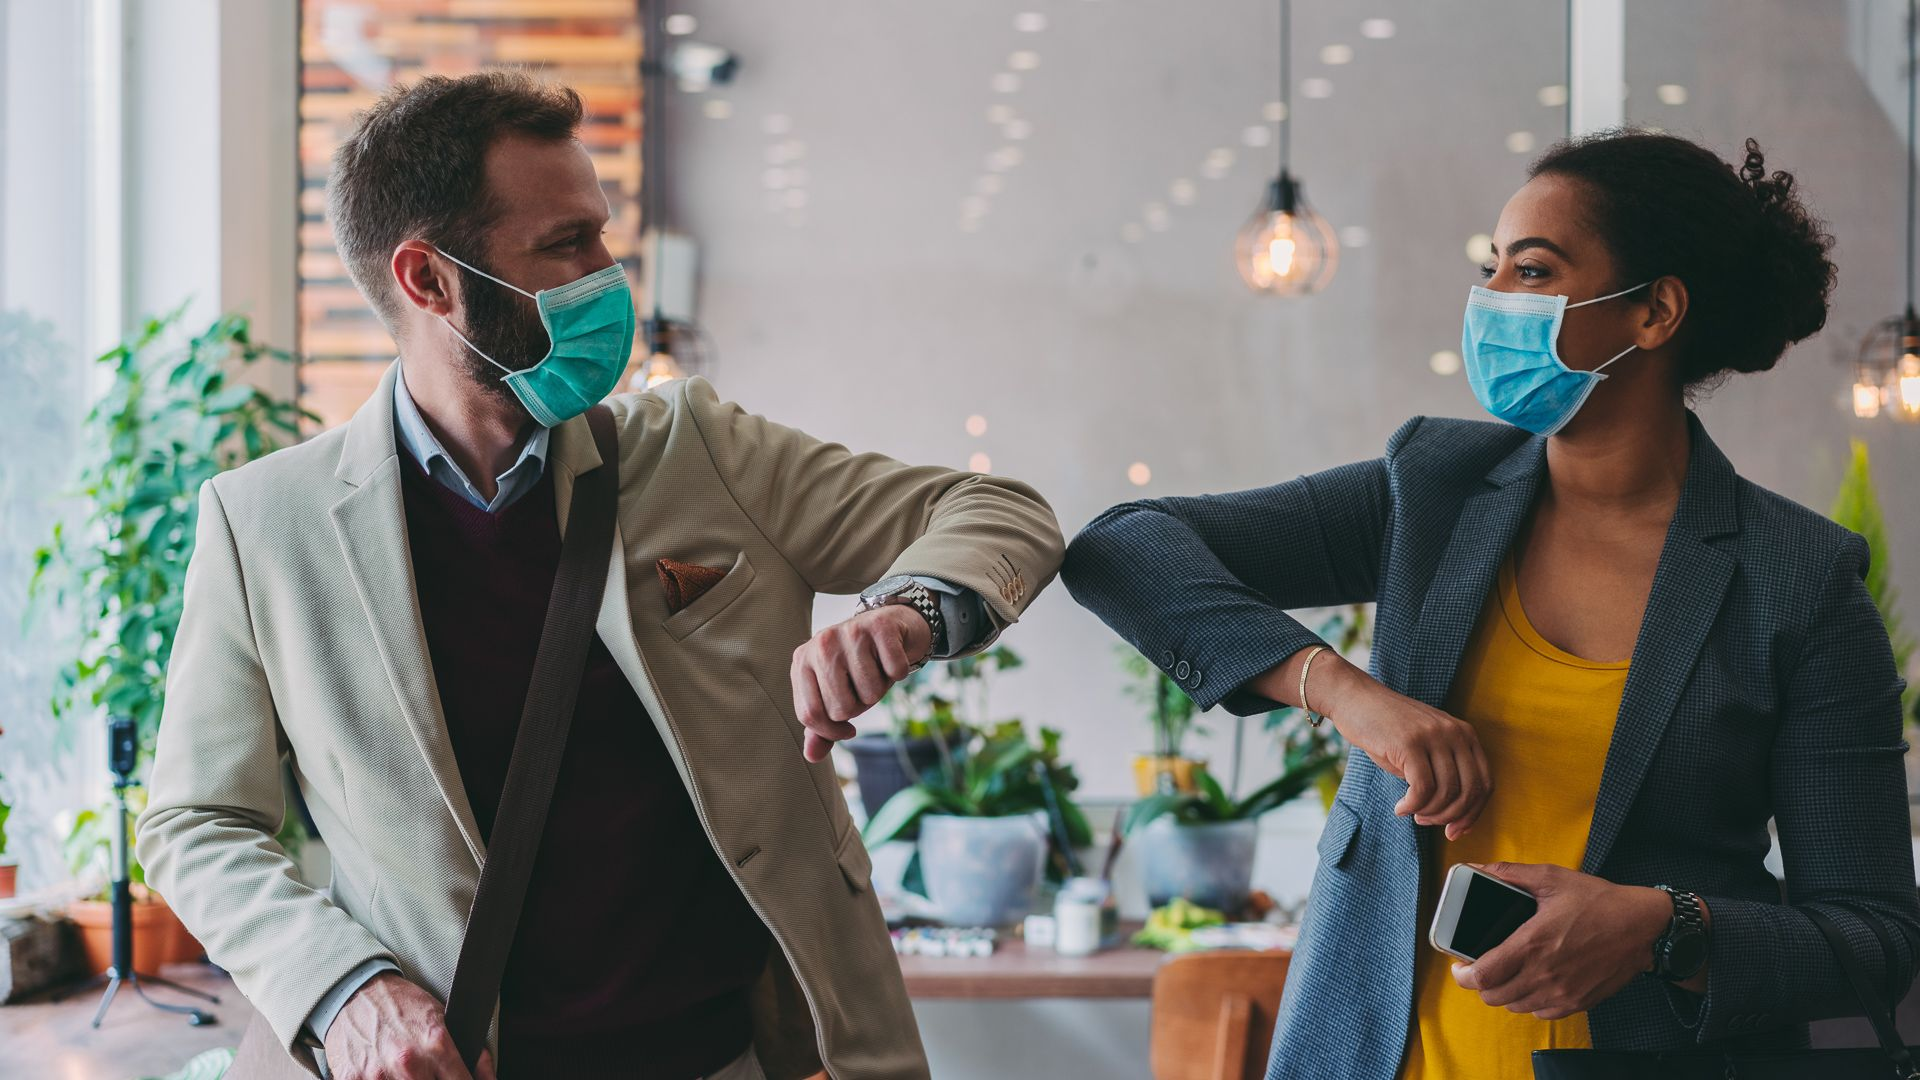 Colleagues in the office practicing alternative greeting to avoid handshakes during COVID-19 pandemic.